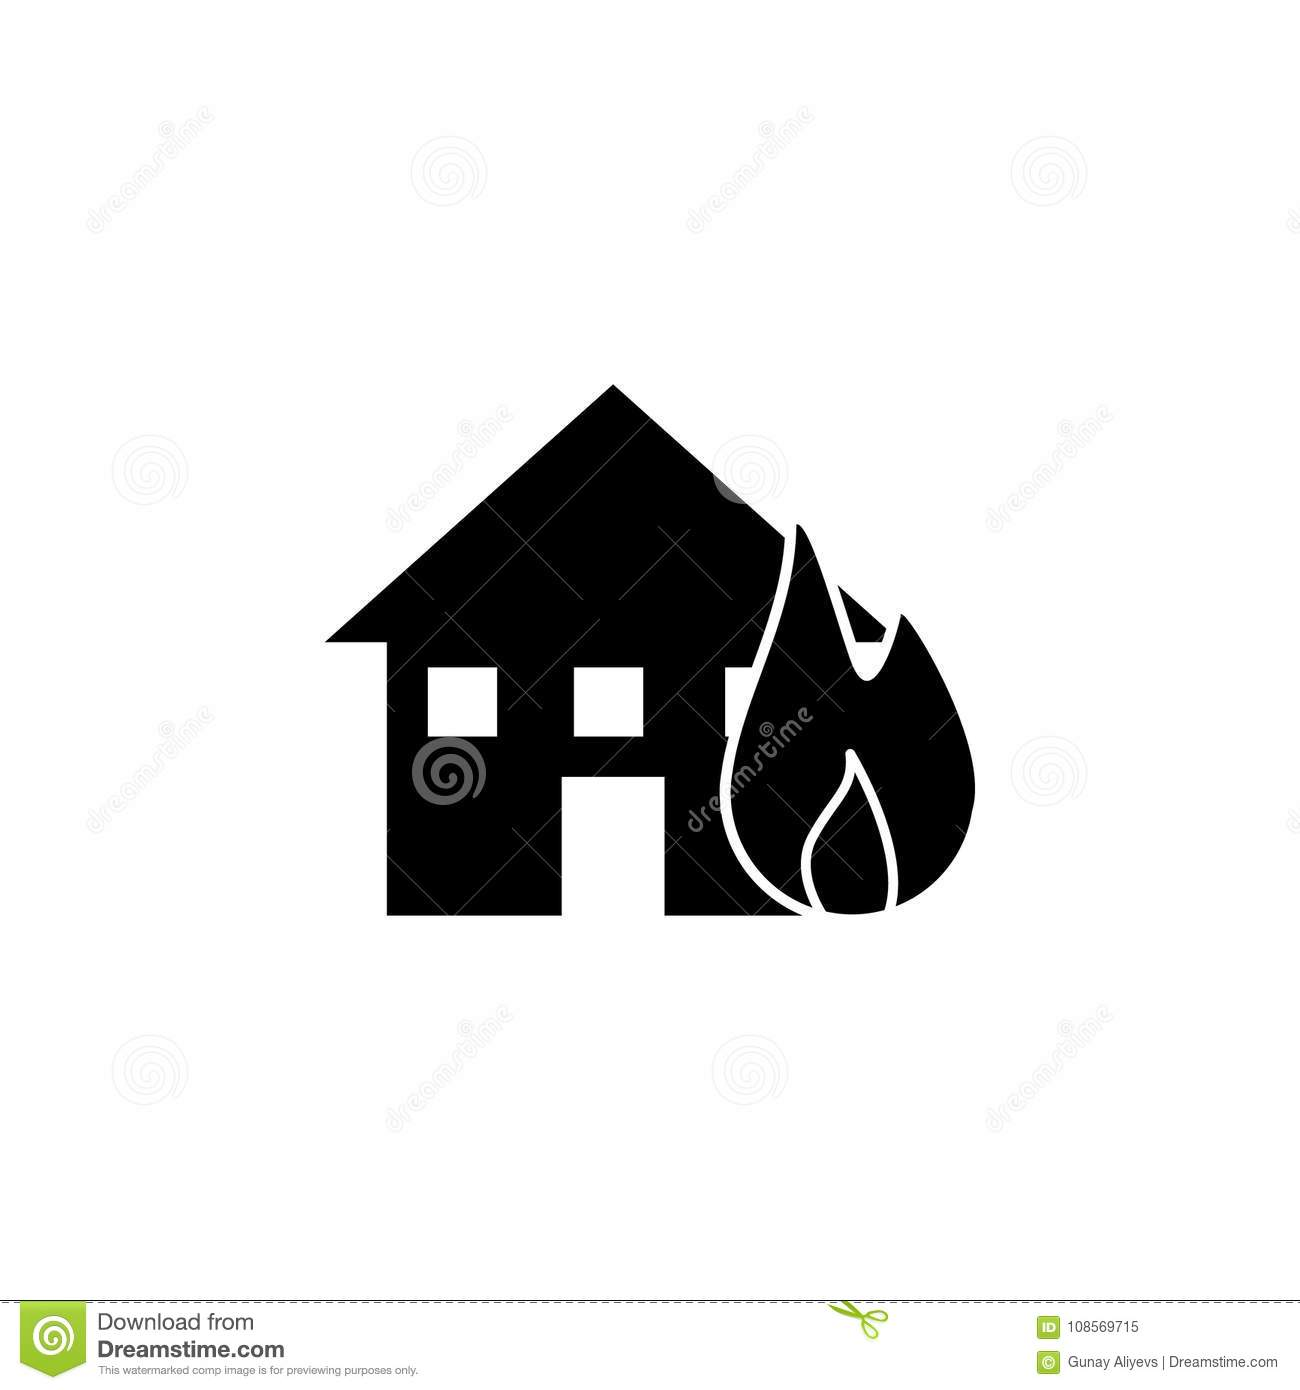 Fire Element Symbol Outline Wiring Diagrams Dilznoofus39s Tessellation Book Home Icon Elements Of Natural Disasters Premium Quality Rh Dreamstime Com Air